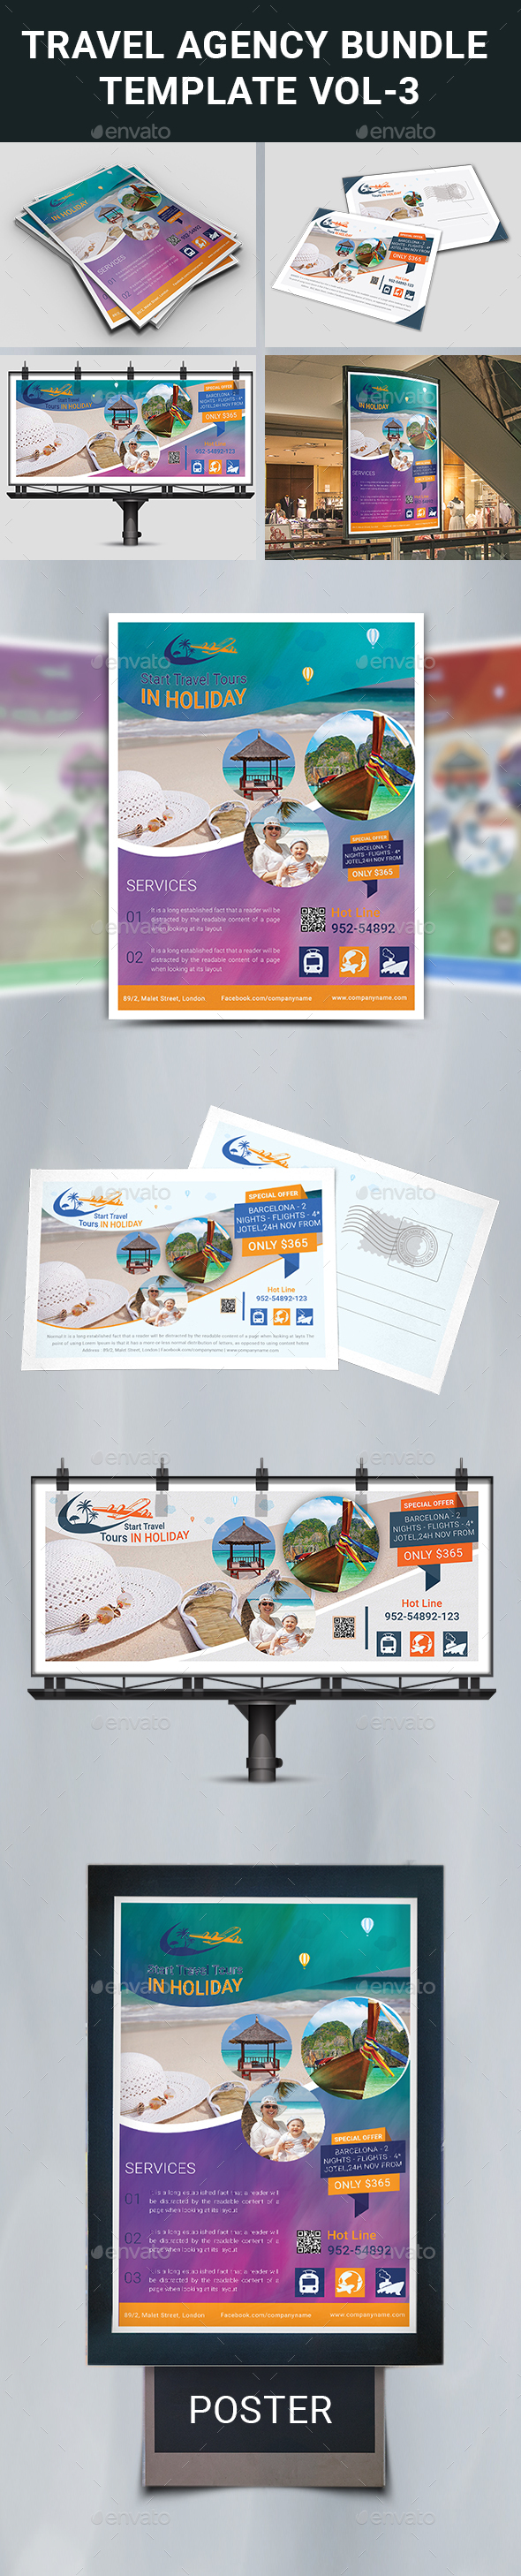 Travel Agency Bundle Template - Corporate Flyers